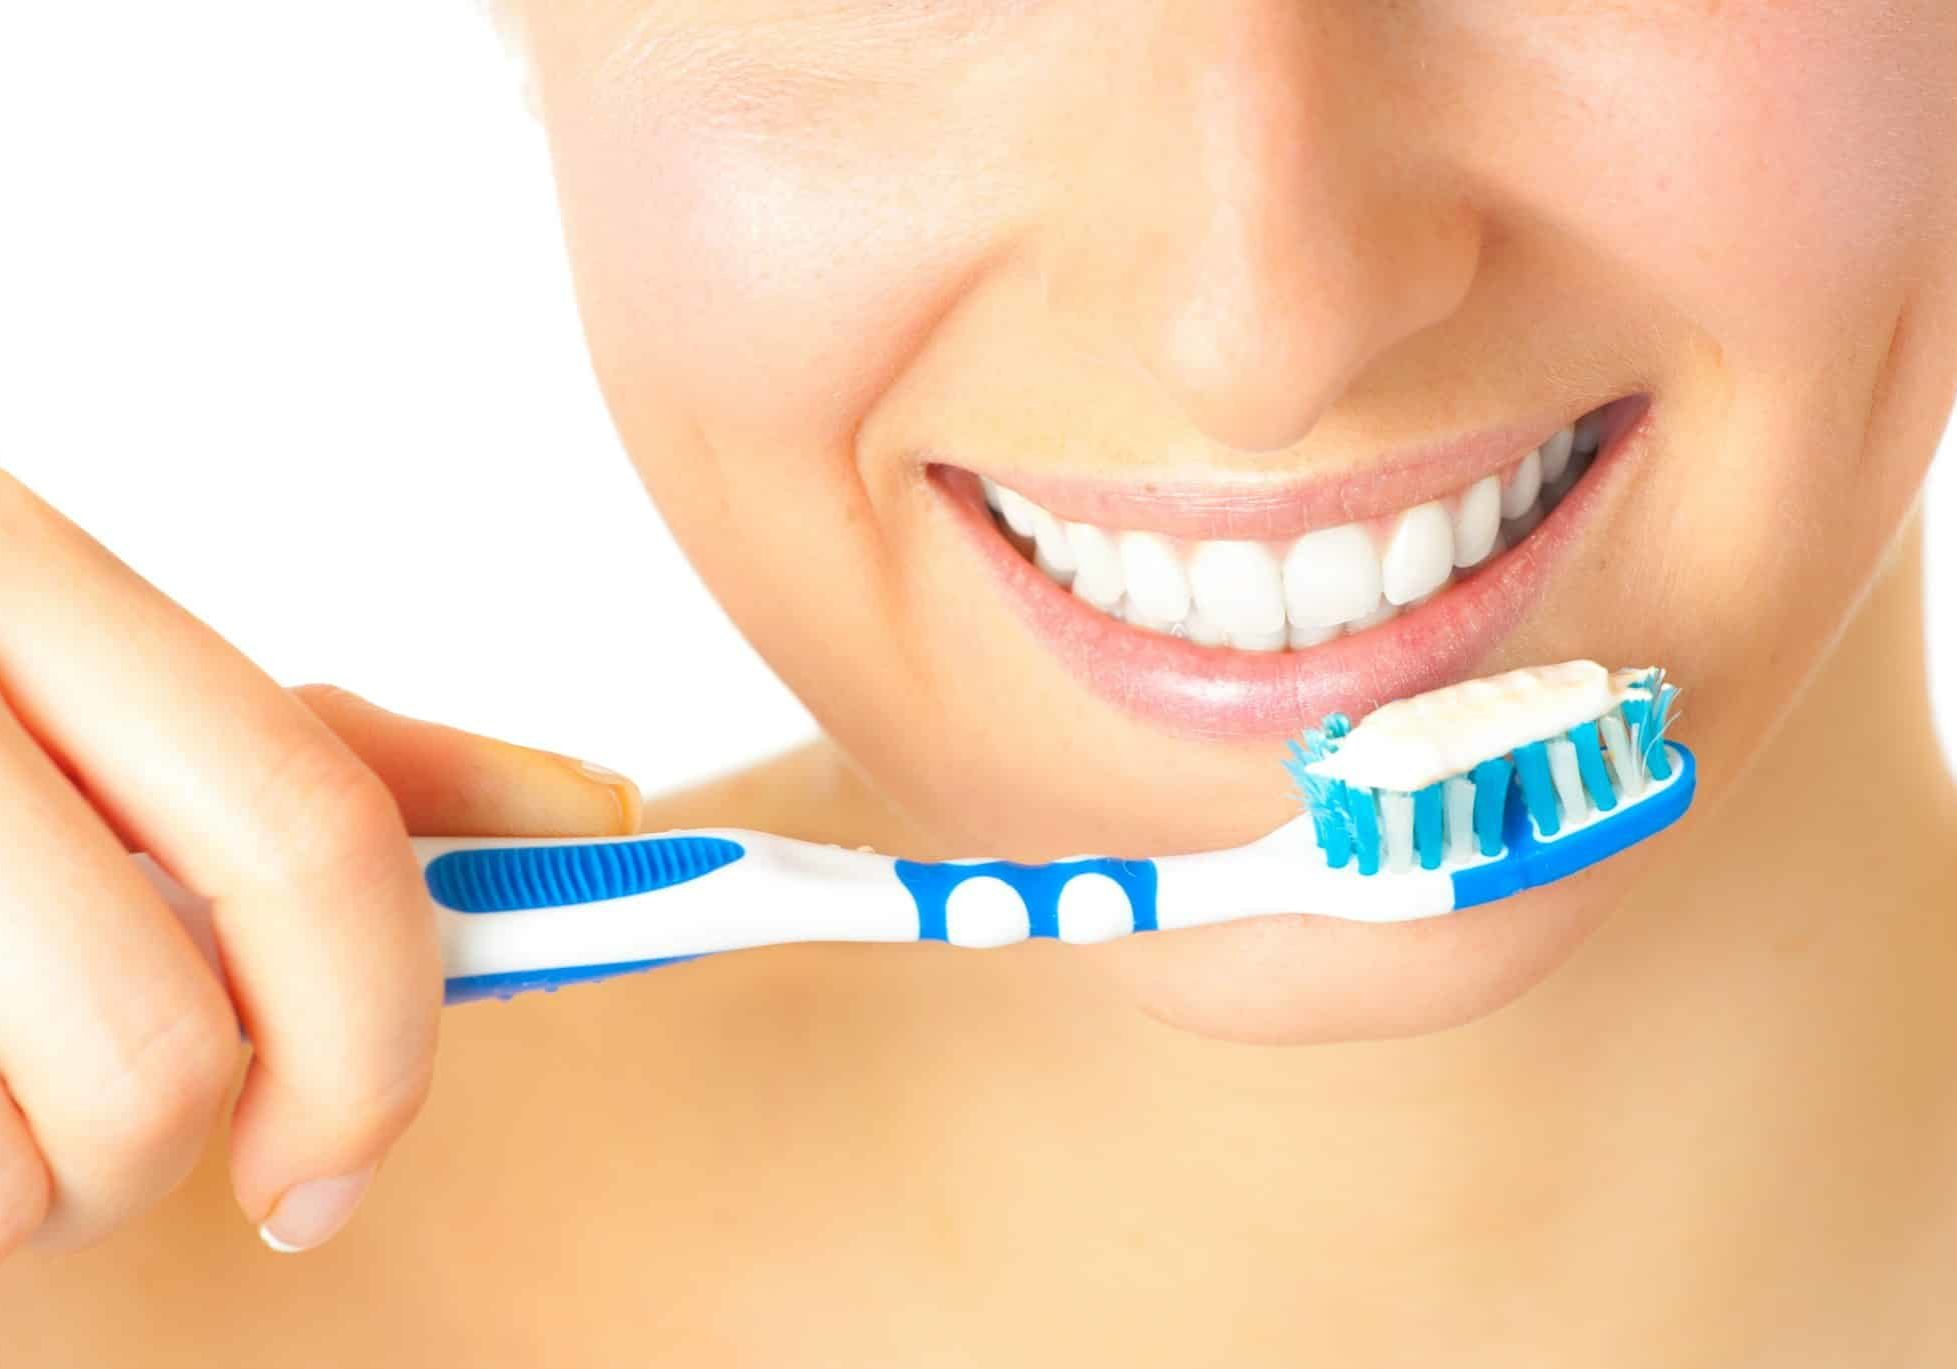 Woman healthy teeth closeup brushing concept